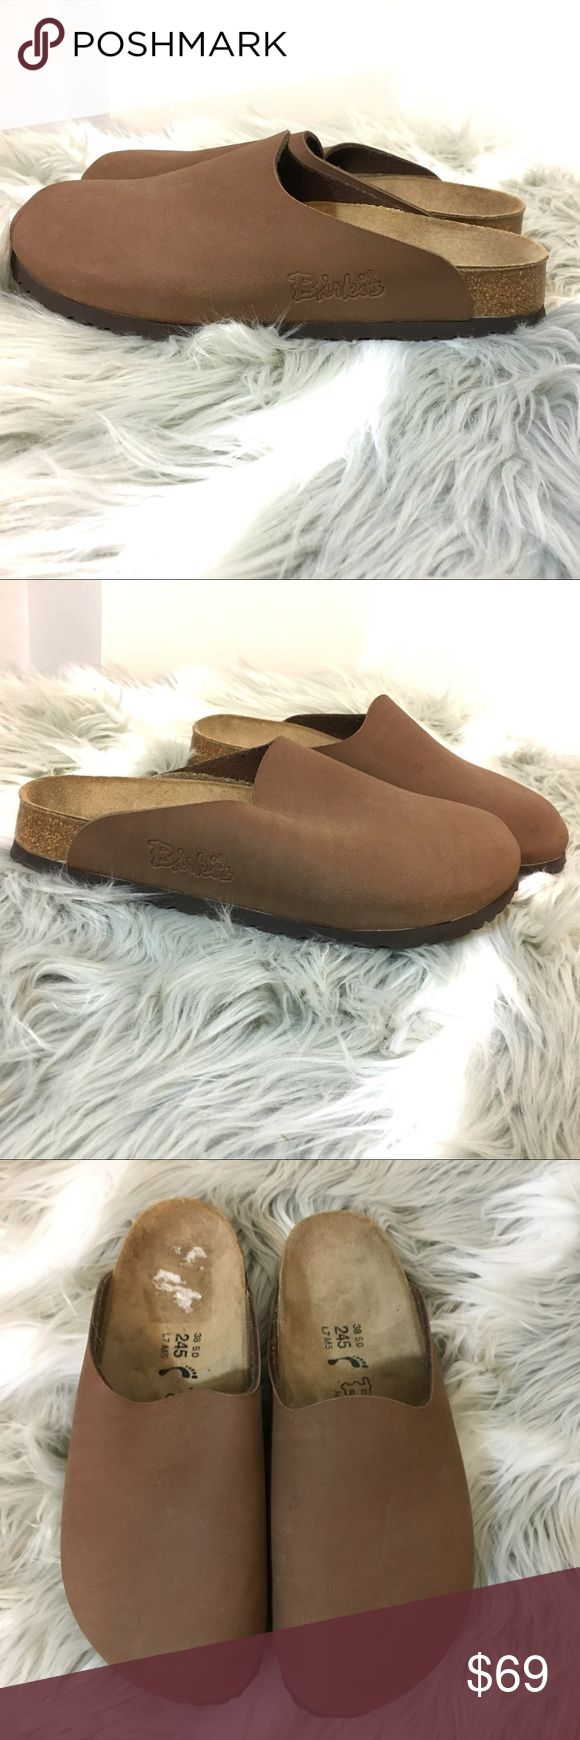 Birkis Birkenstock clogs Birkenstock Birkis Brown Clogs Size 38 or a women's US size 7 (posh's  international size chart is off please look at the shoe it says L7 which is a ladies 7) worn twice!!! Like new, these are the rubbery top kind Birkenstock Shoes Mules & Clogs